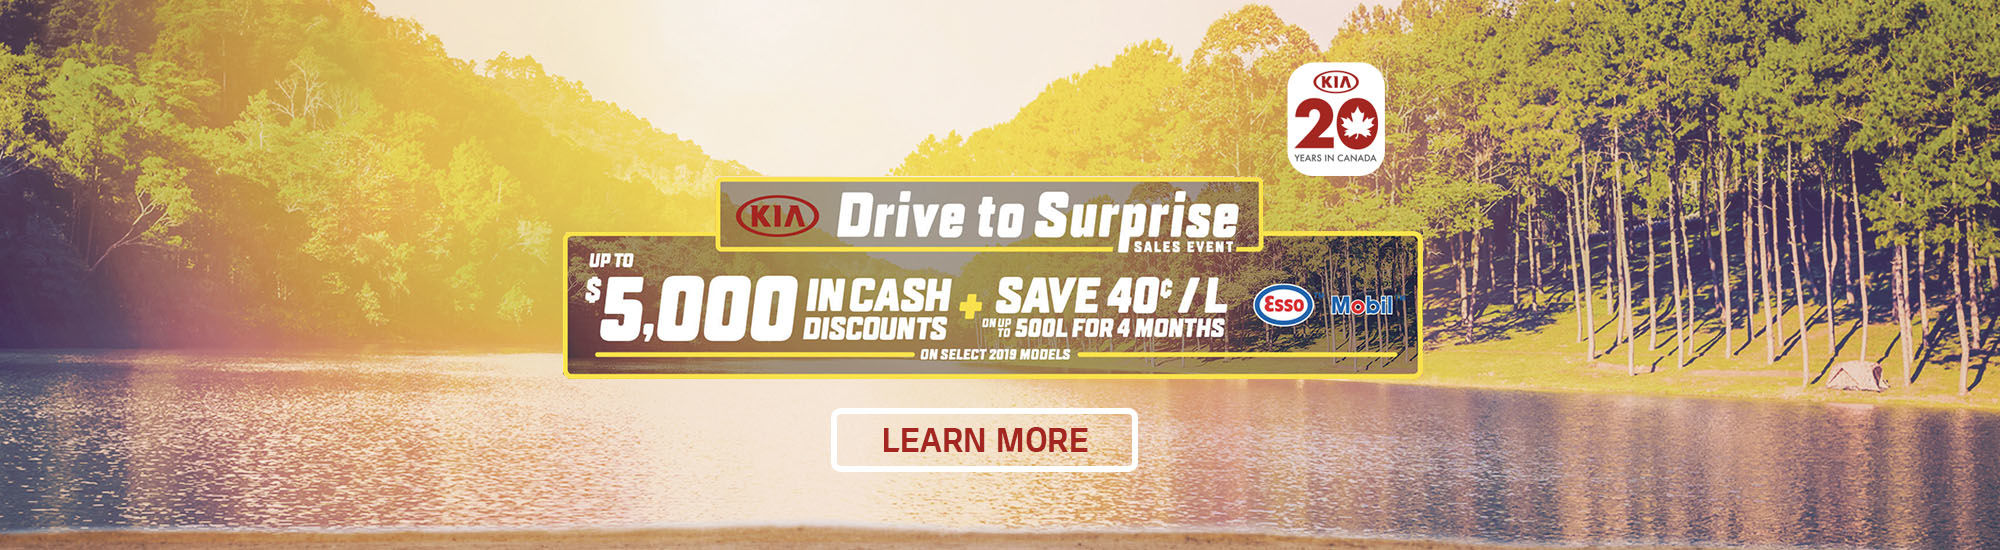 Kia Drive to surprise